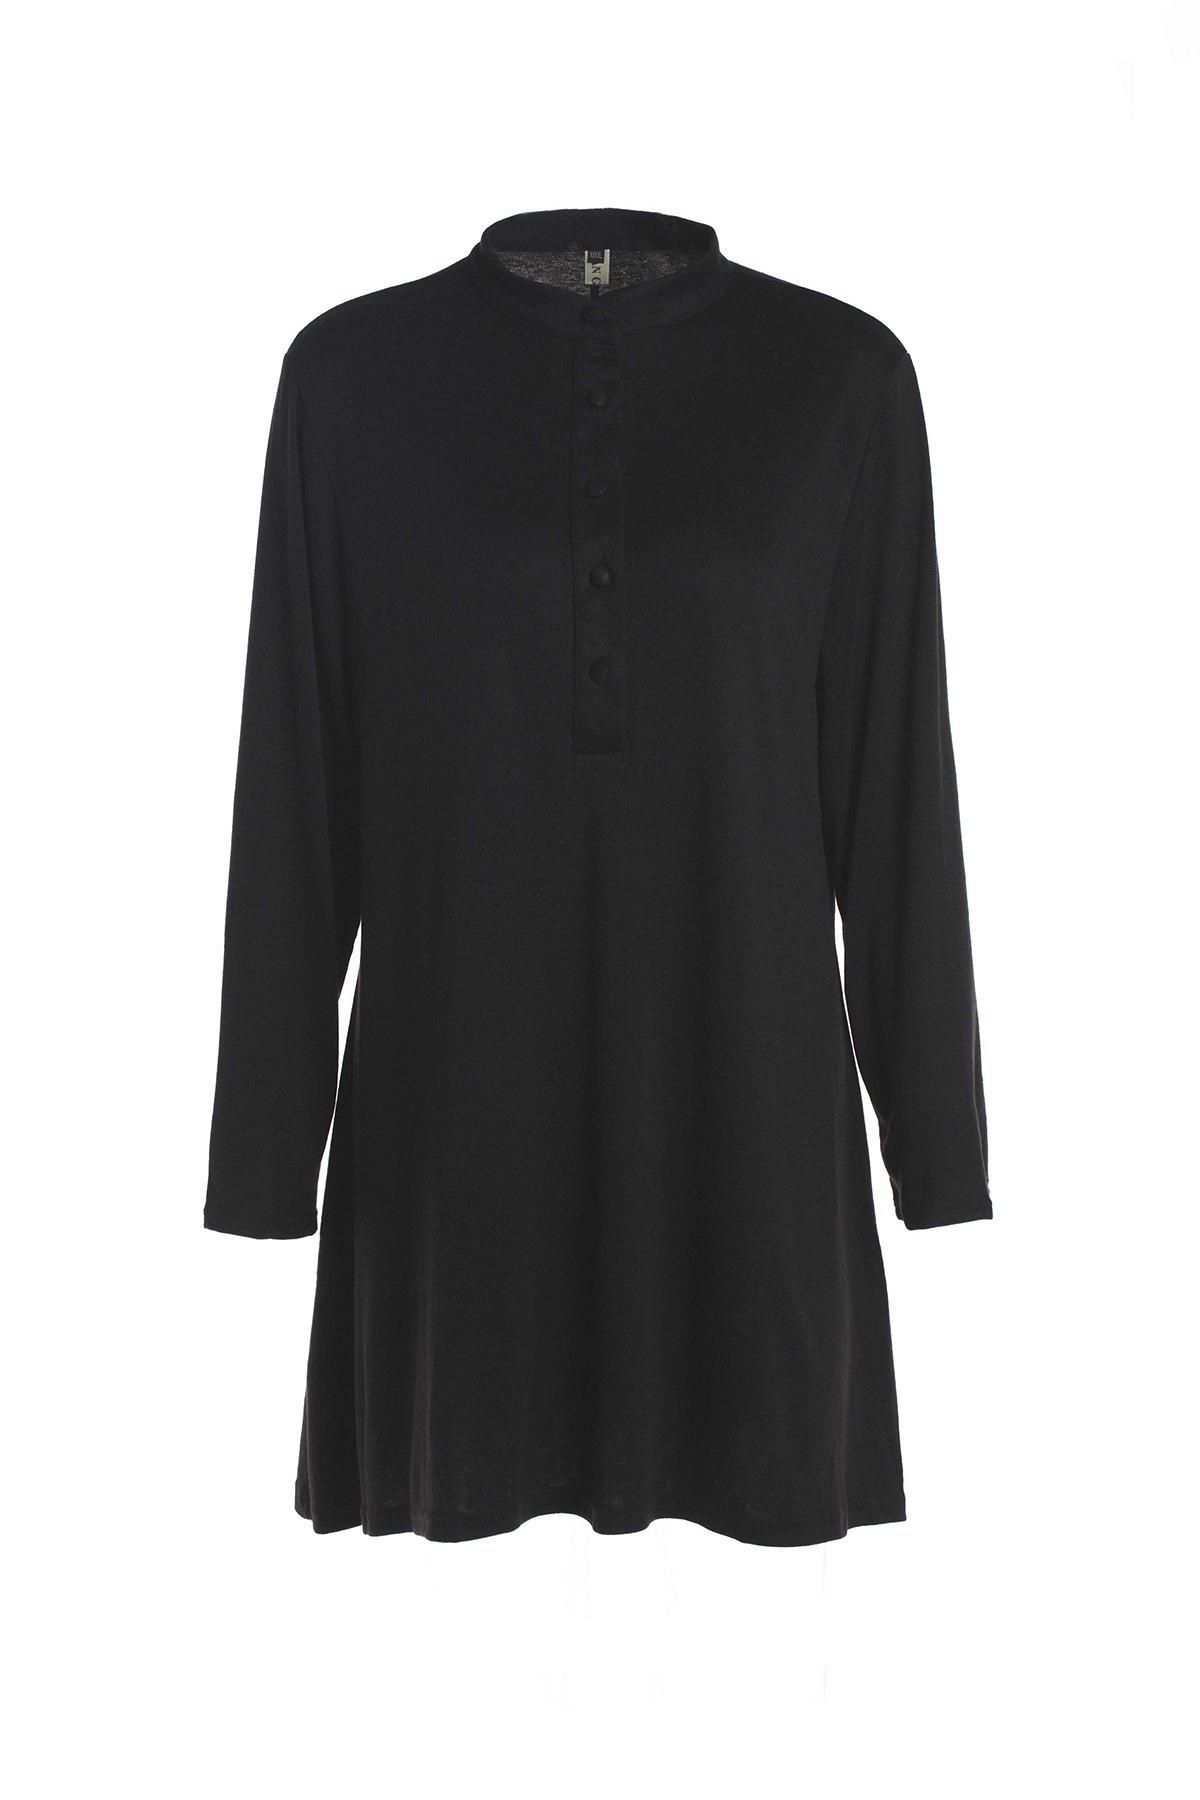 Casual Stand Collar Solid Color Plus Size Long Sleeve Women's Dress - BLACK 4XL